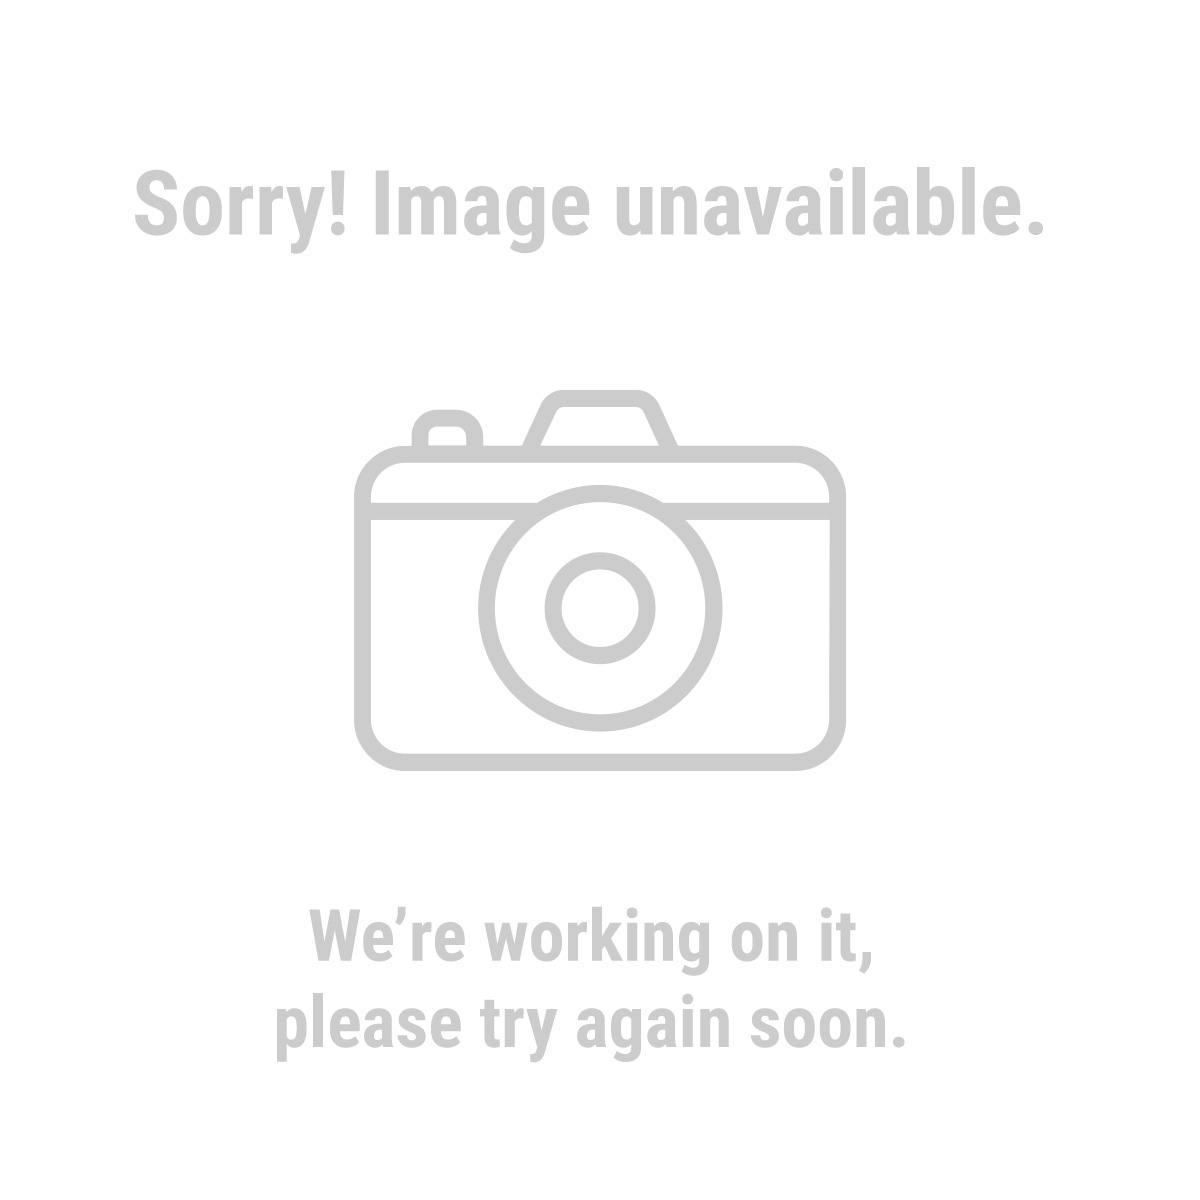 Haul-Master® 69377 Drywall Panel Hoist